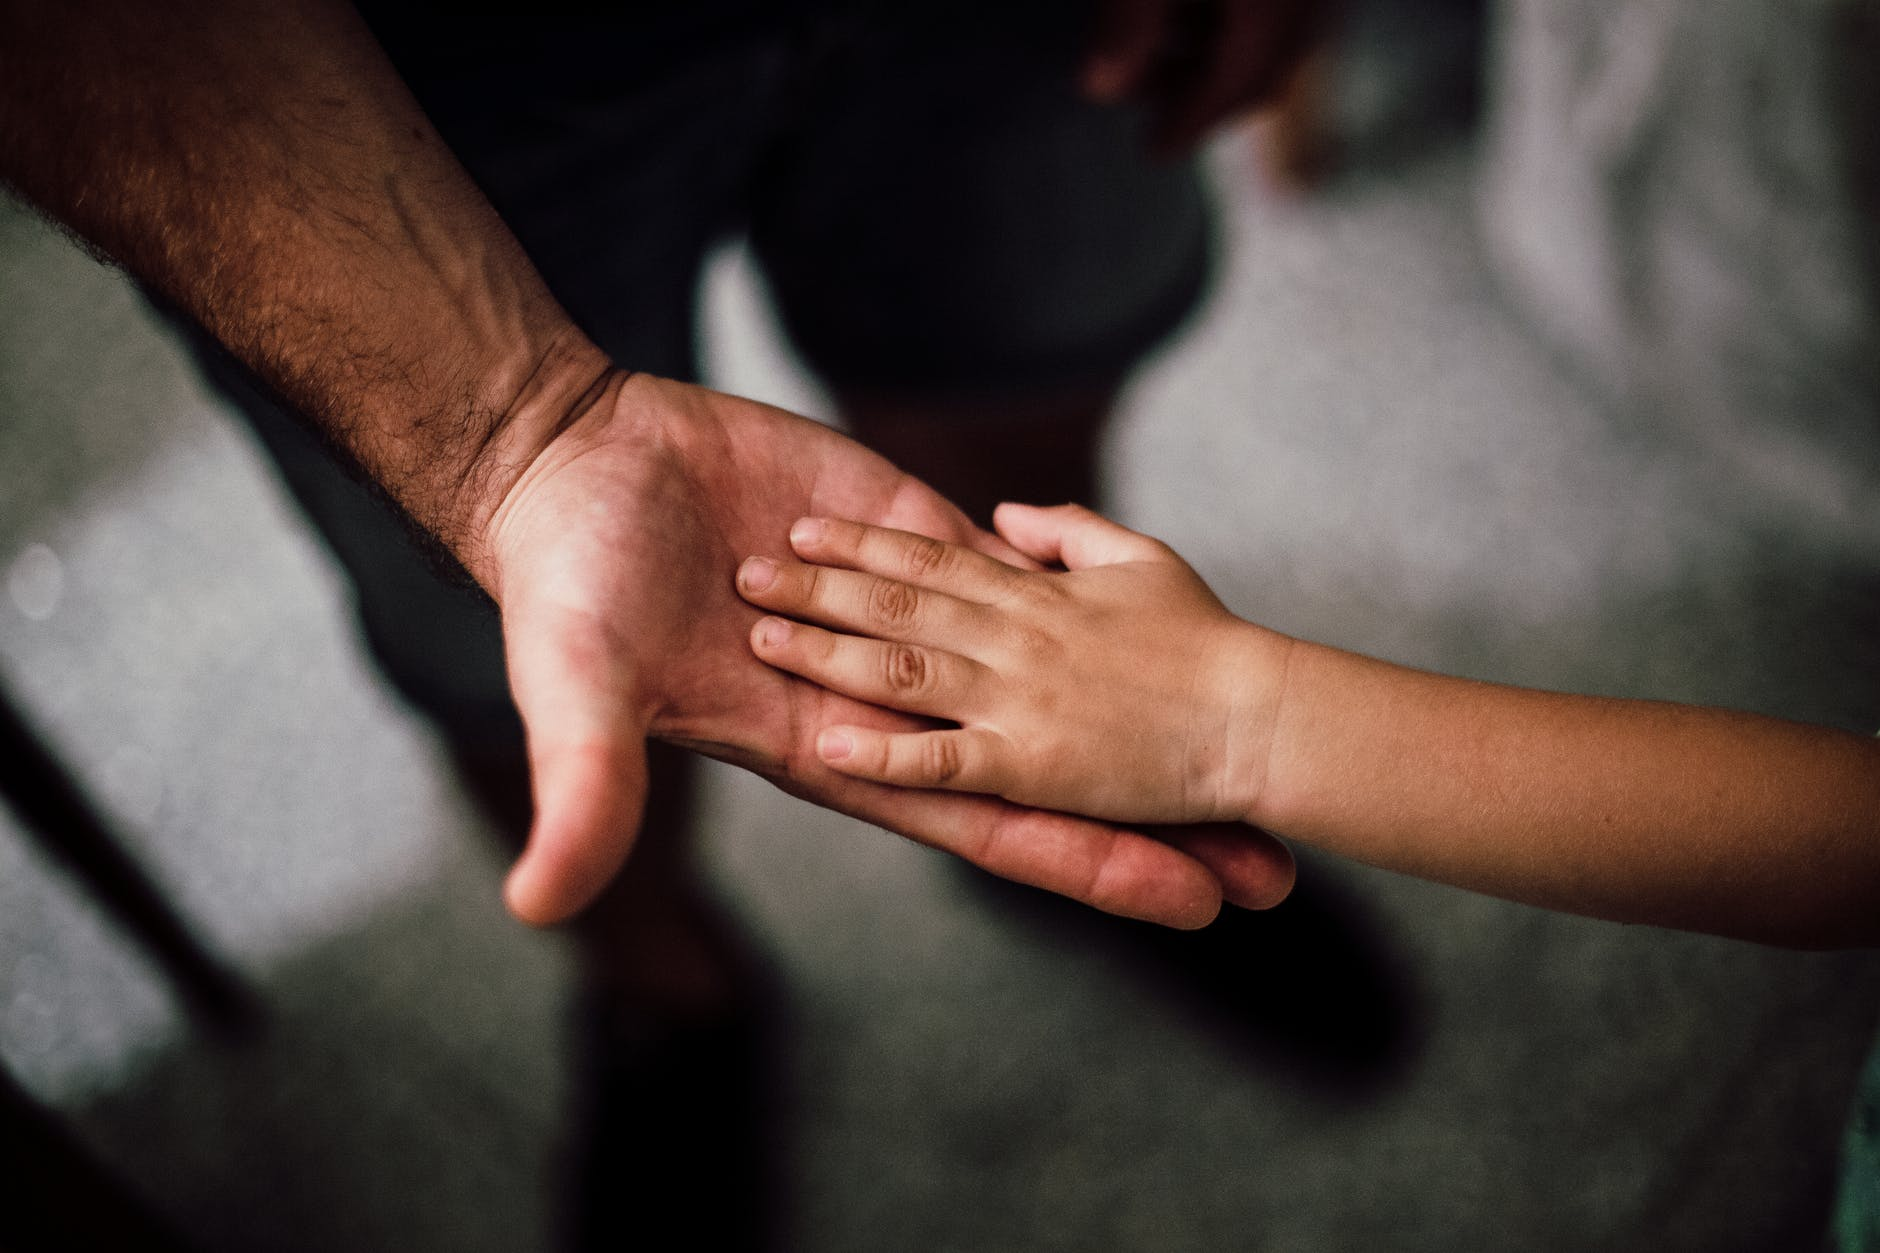 Parenting – Building an authentic relationship with your Child